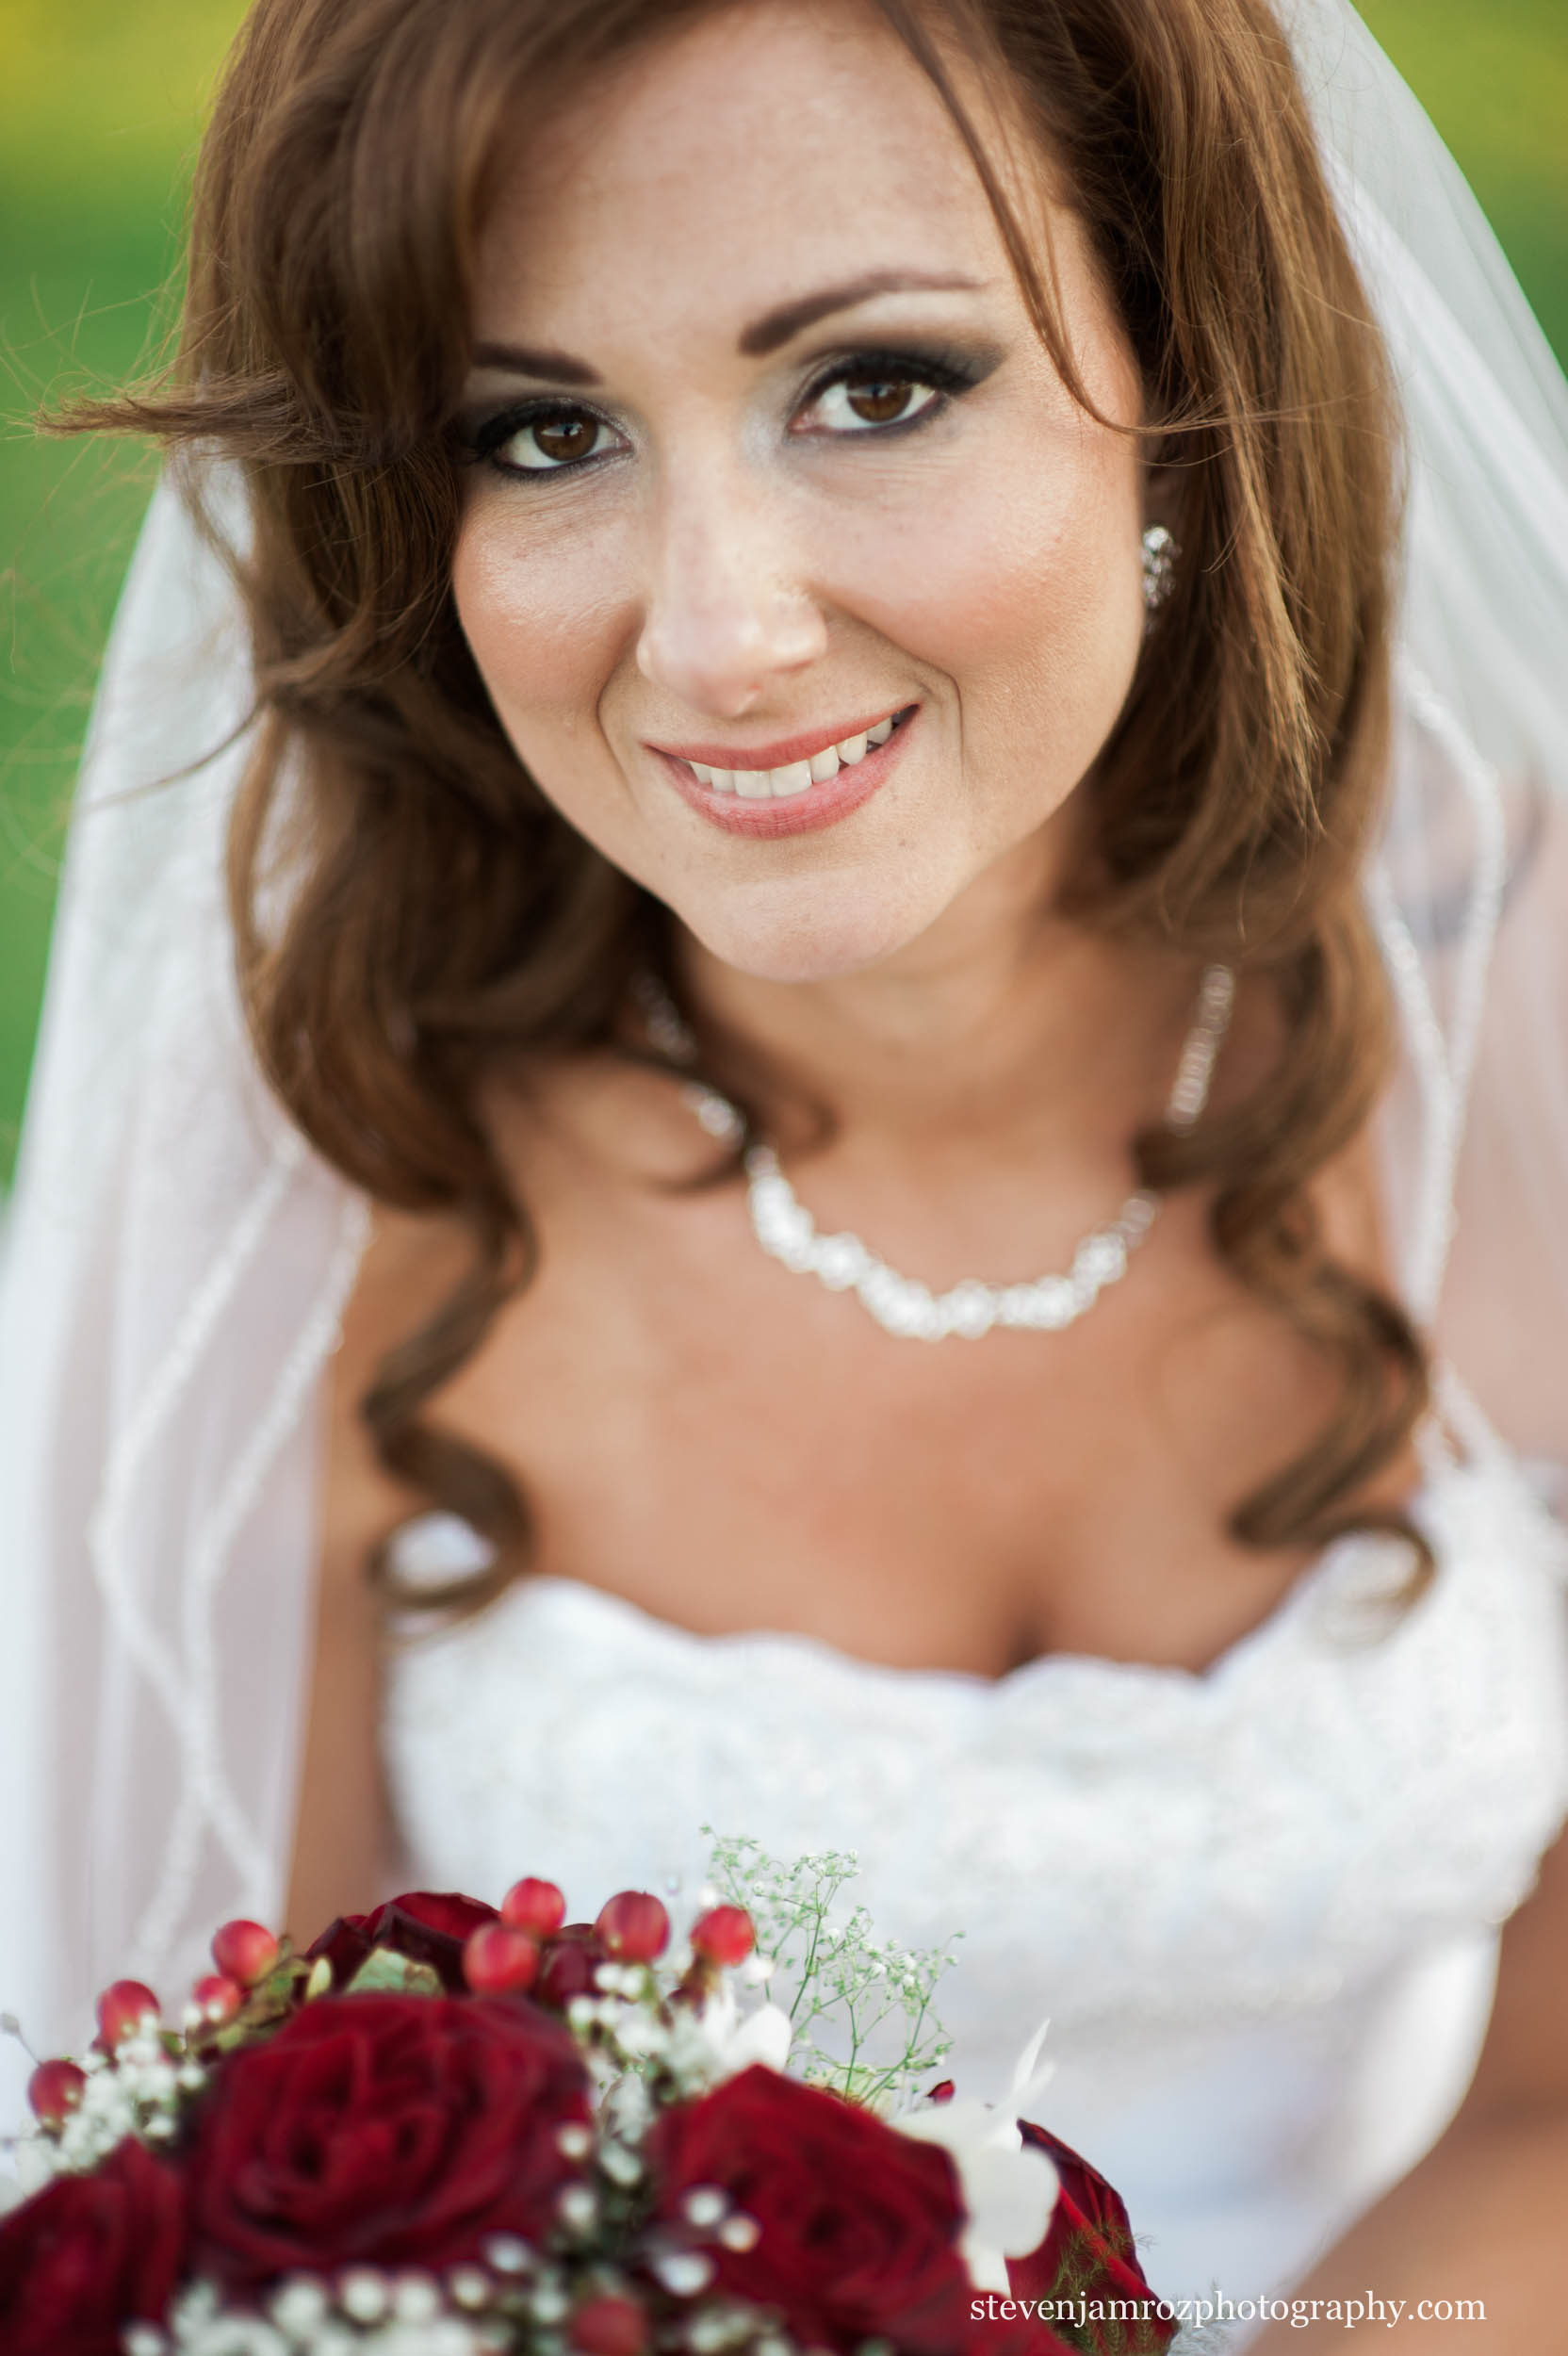 red-white-bride-photo-pretty-wedding-wake-forest-nc-steven-jamroz-0729.jpg